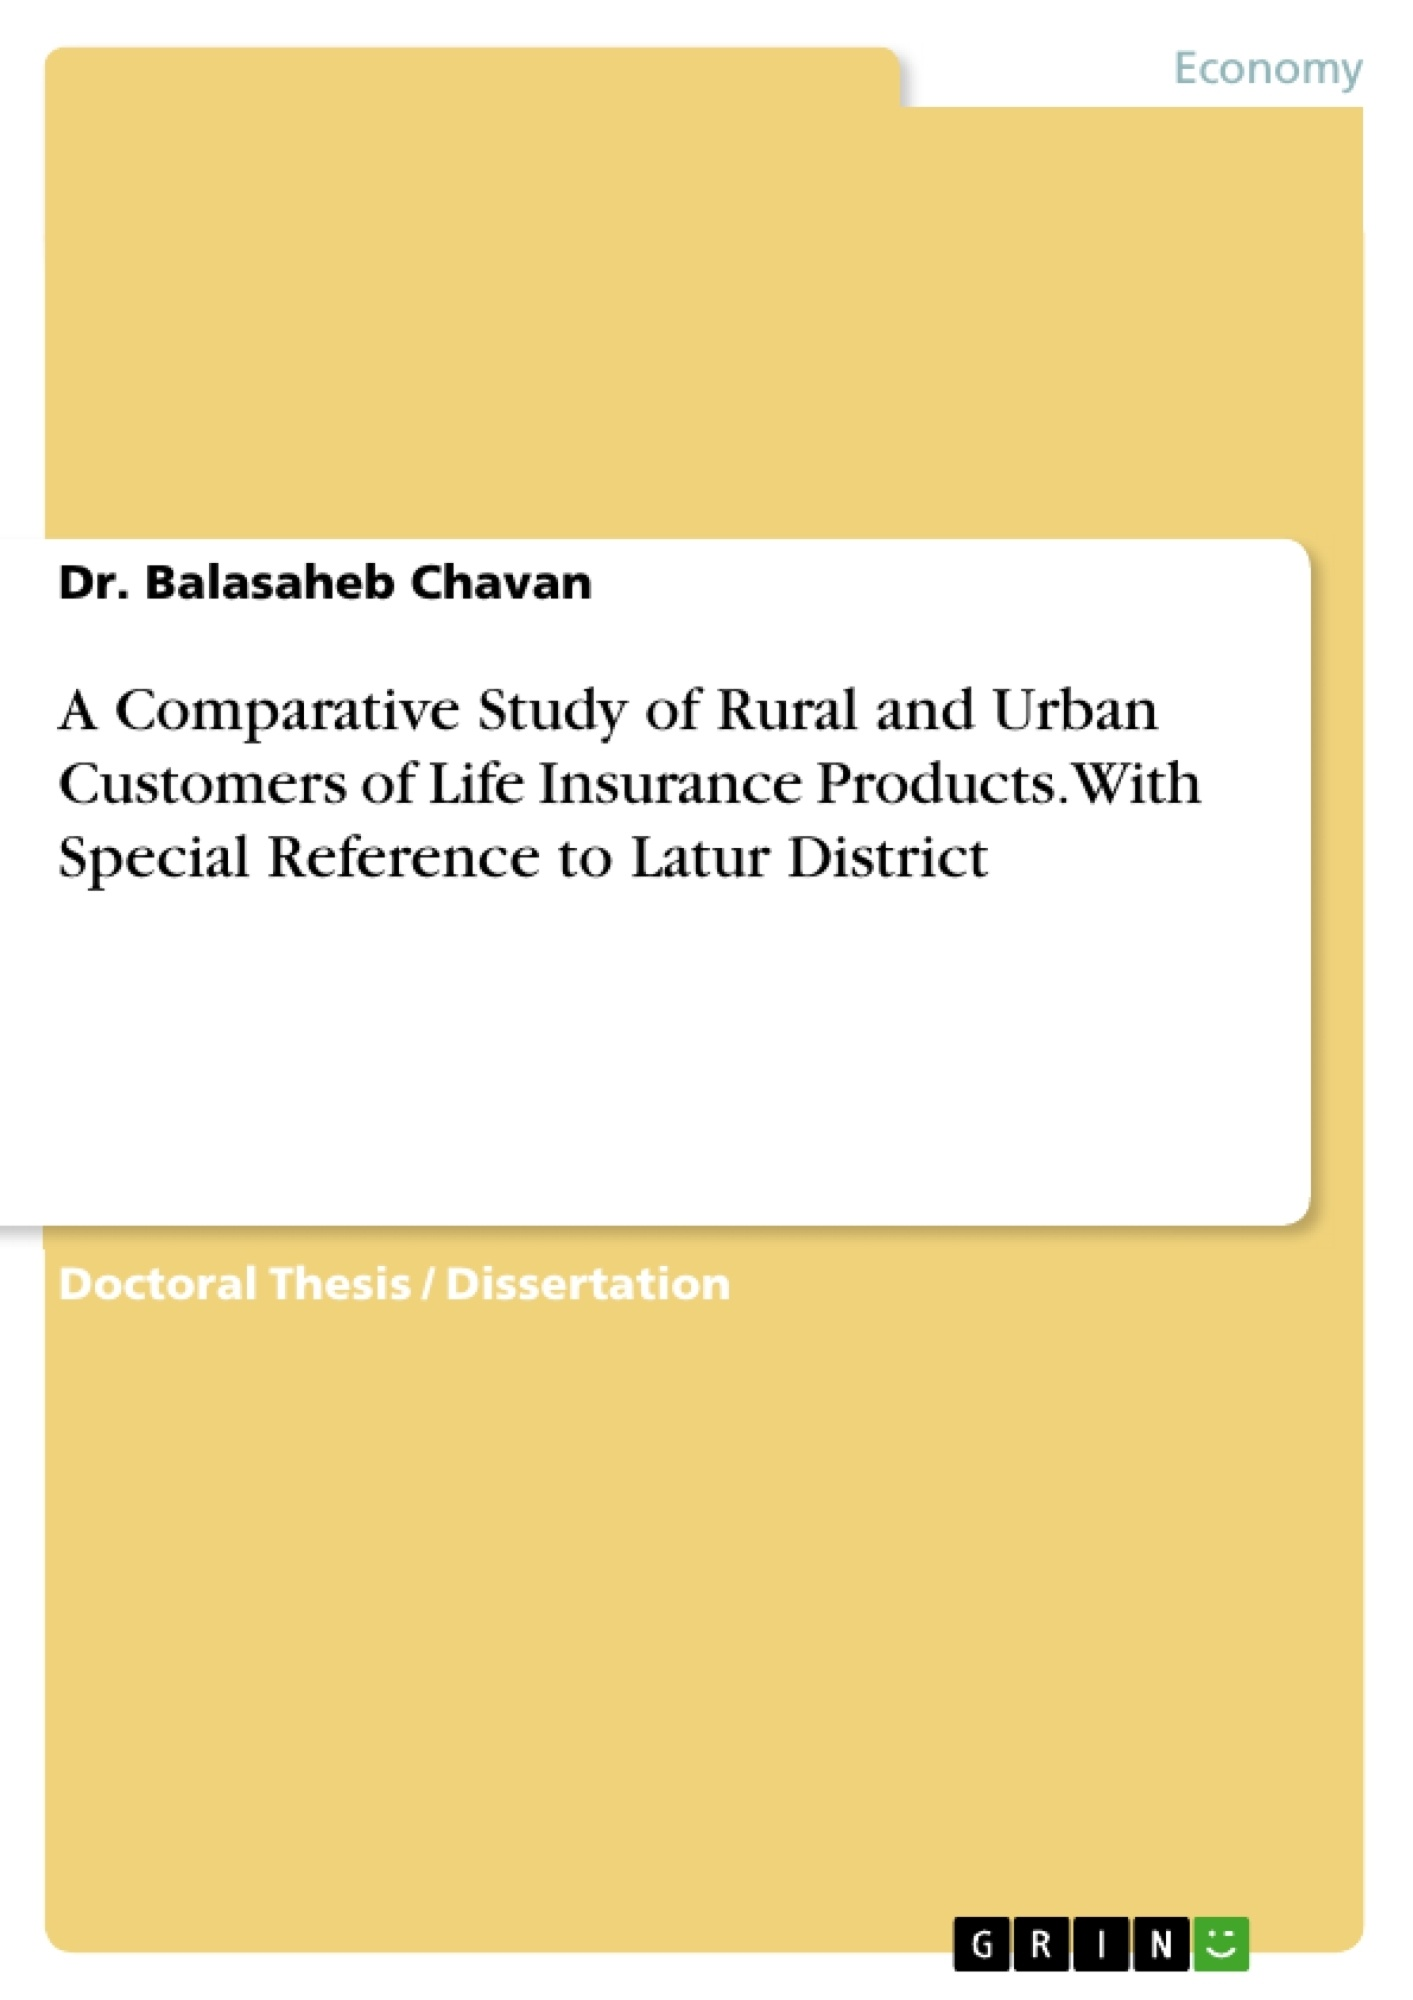 Title: A Comparative Study of Rural and Urban Customers of Life Insurance Products. With Special Reference to Latur District